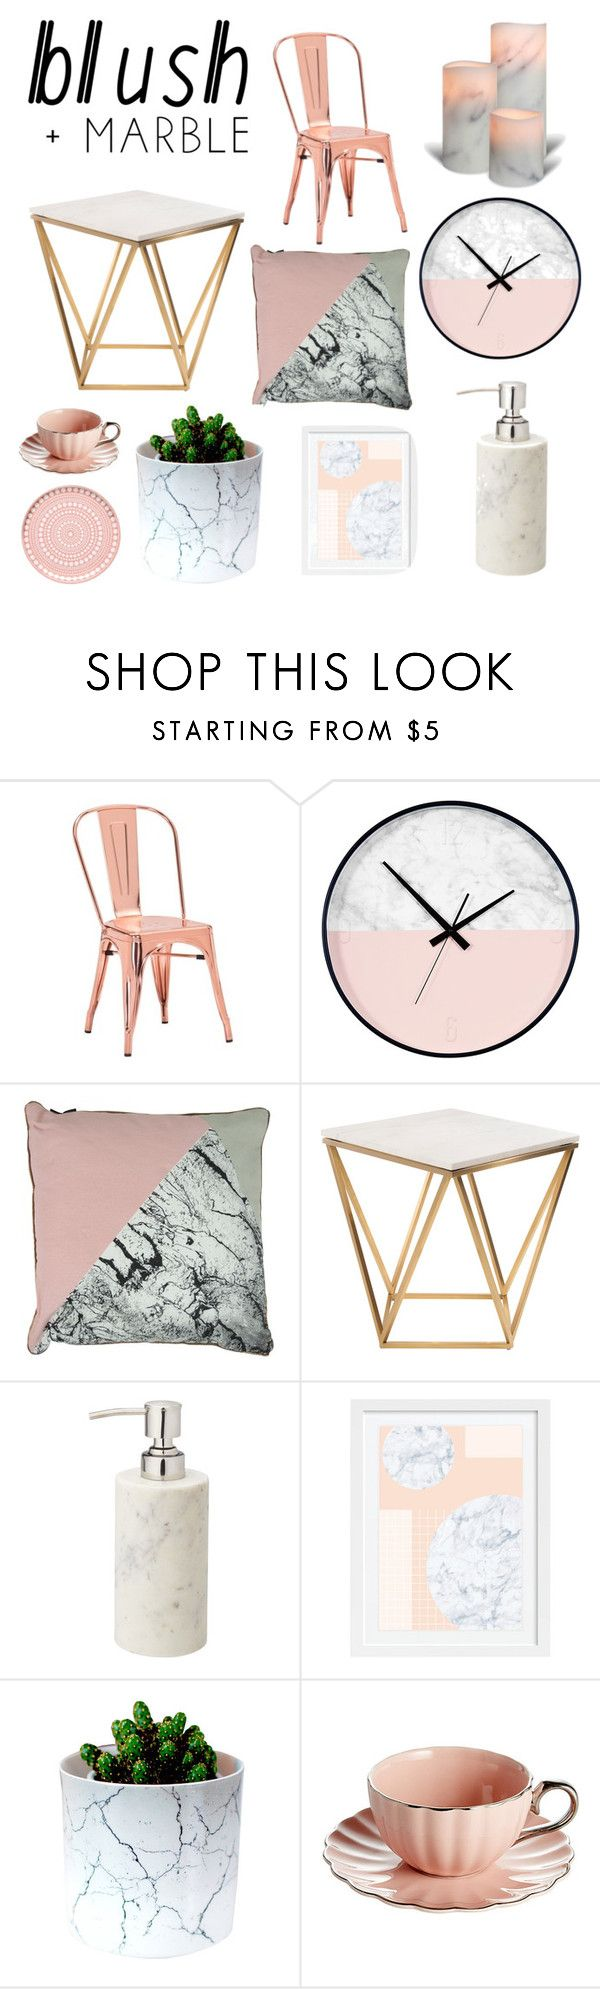 """""""Blush + Marble"""" by thelivesoftruefangirls ❤ liked on Polyvore featuring interior, interiors, interior design, home, home decor, interior decorating, Zuo, Nuevo, iittala and homedecor"""